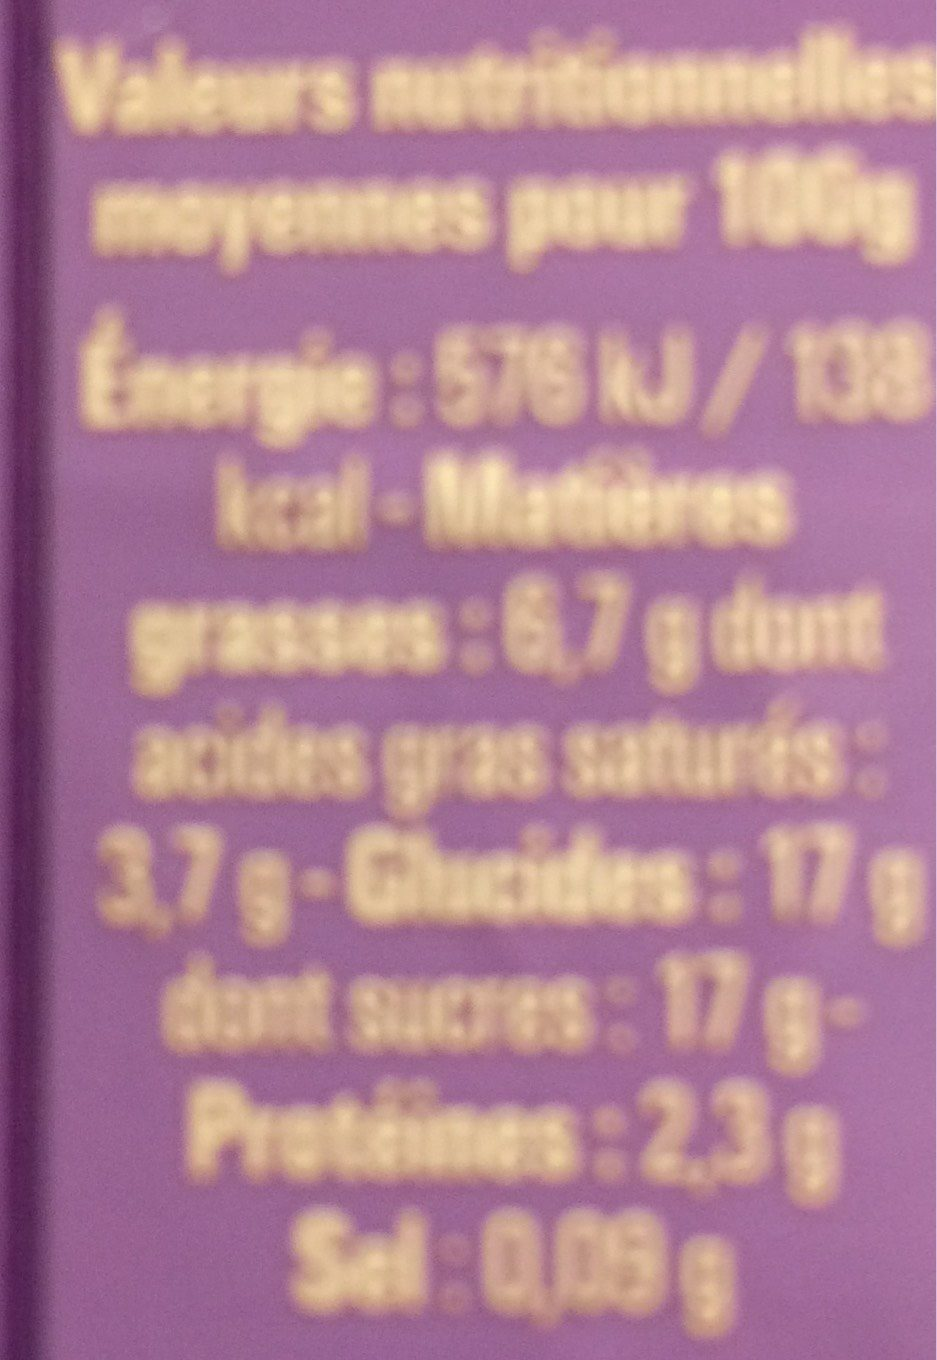 Le yaourt aux fruits Figue Miel - Nutrition facts - fr